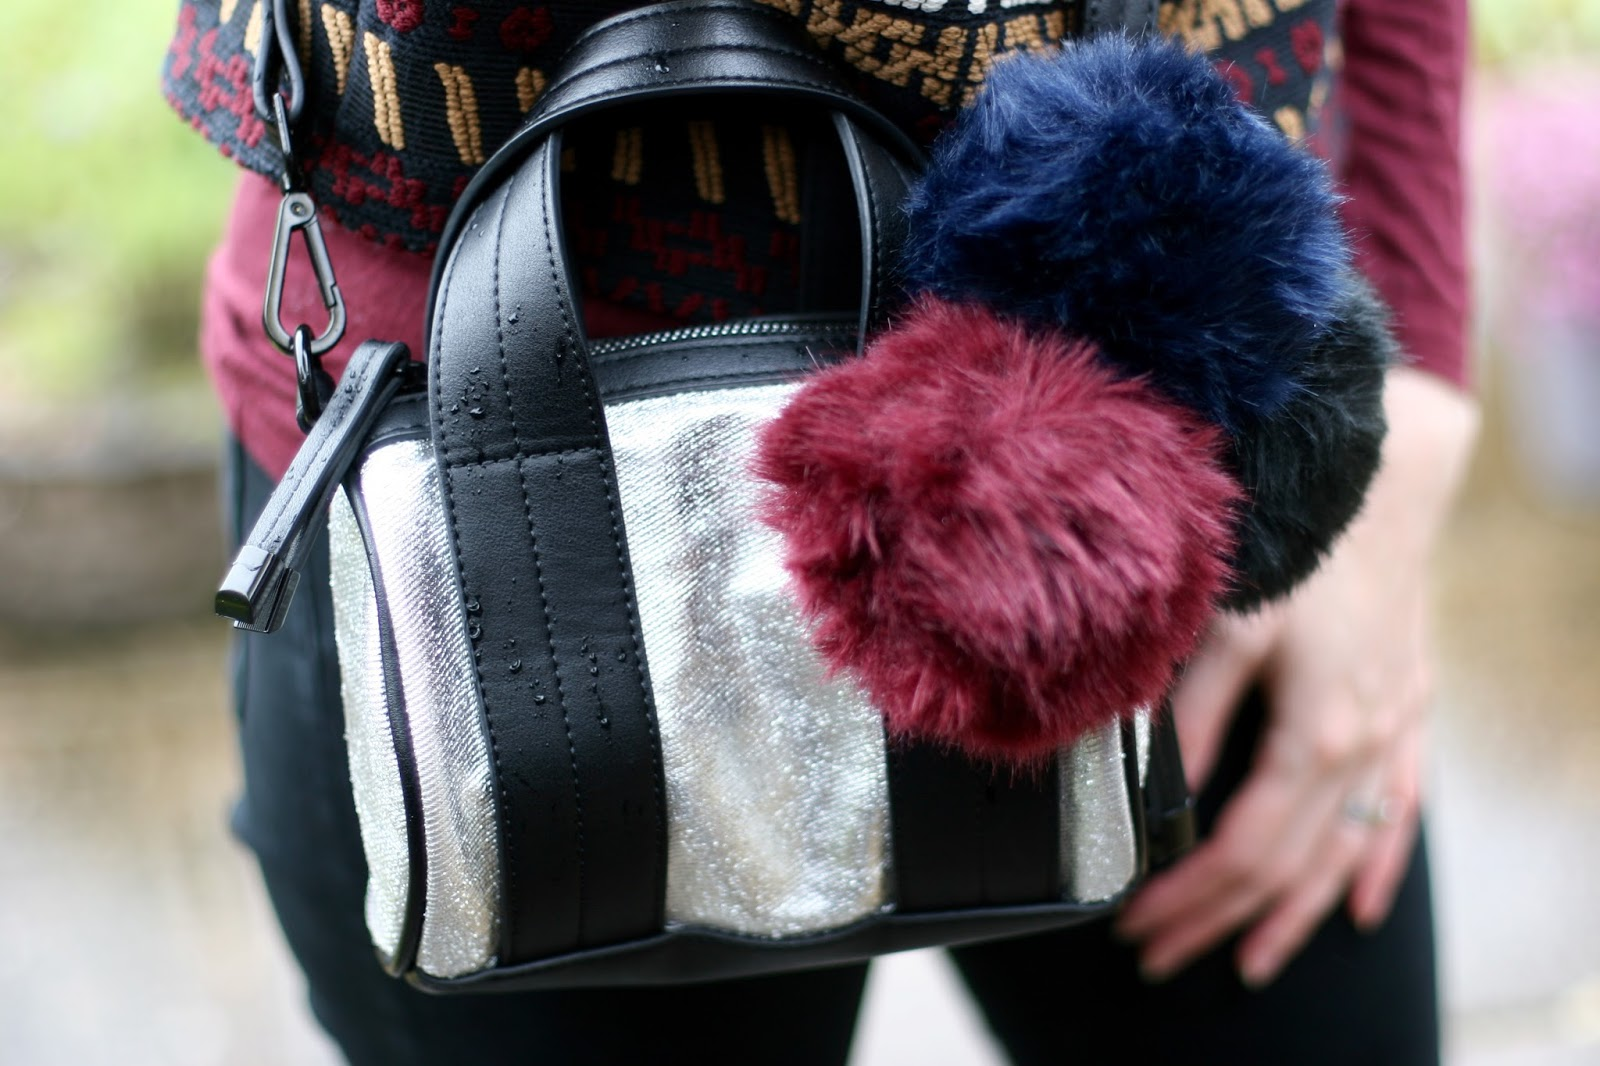 Topshop bag and pom poms.